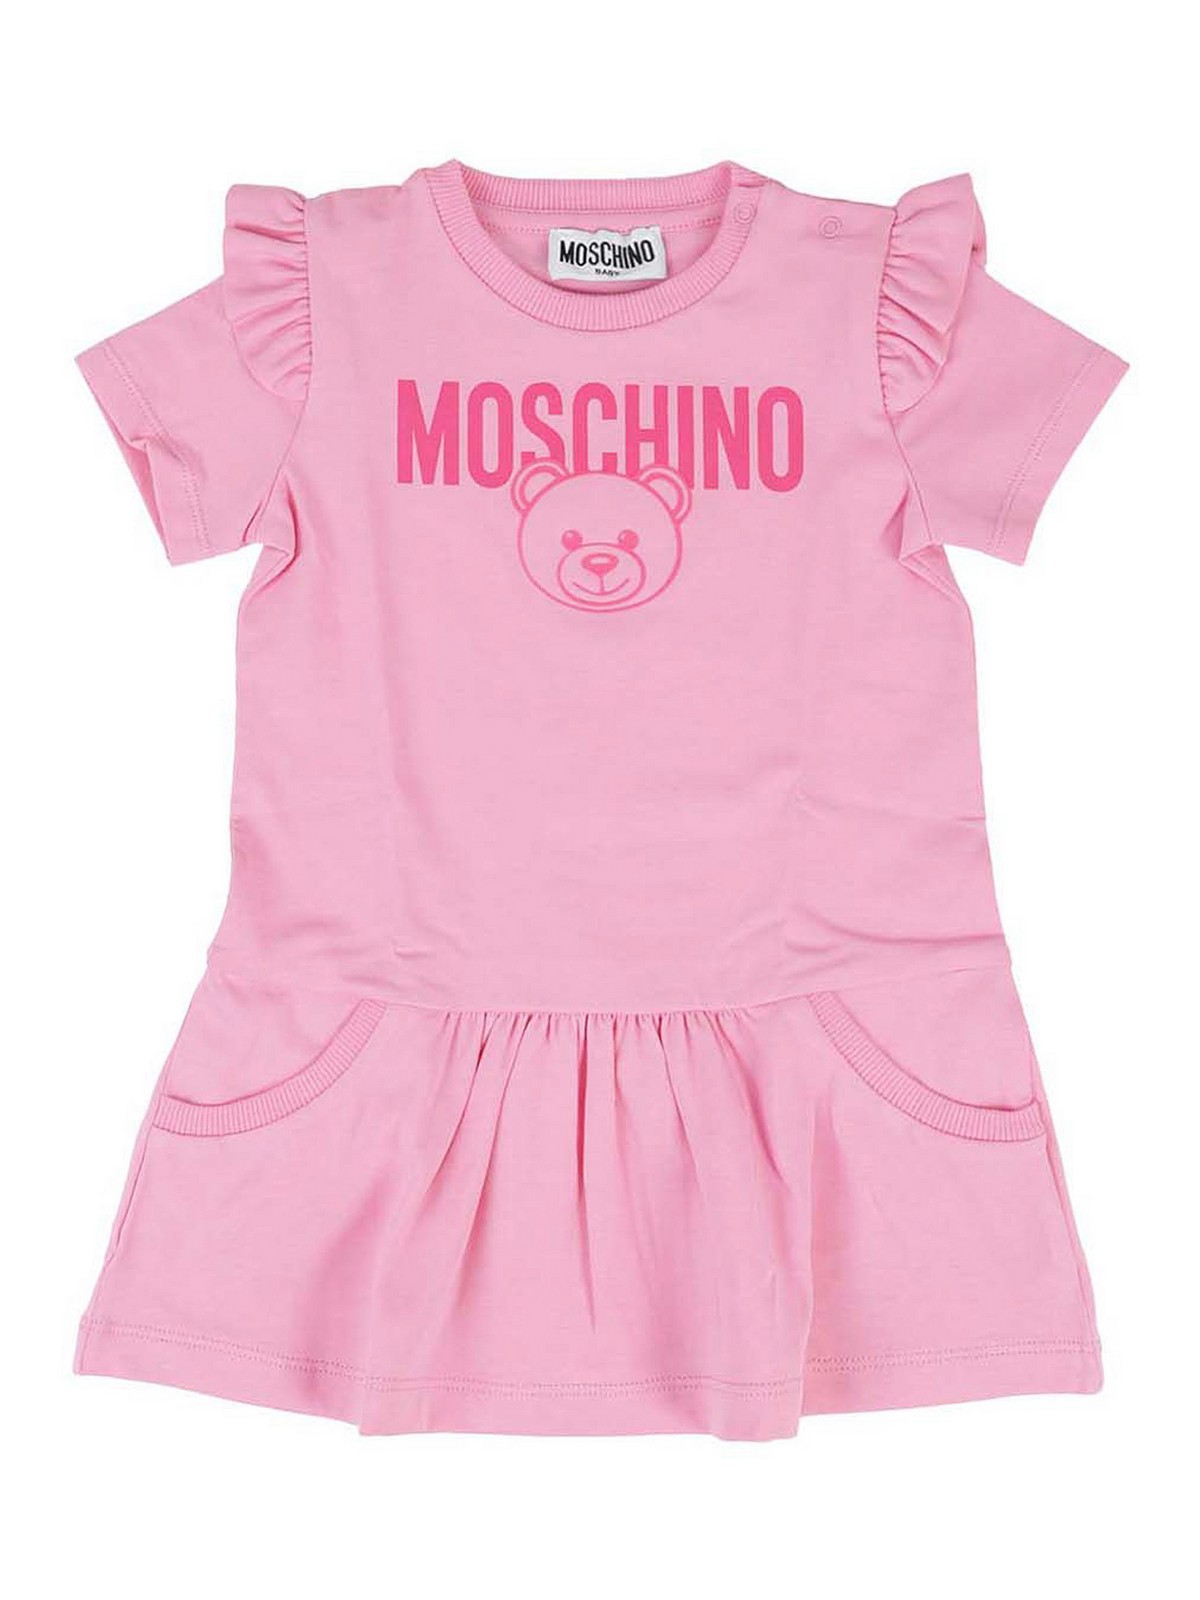 Moschino Kids' Teddy Print Cotton Dress In Pink